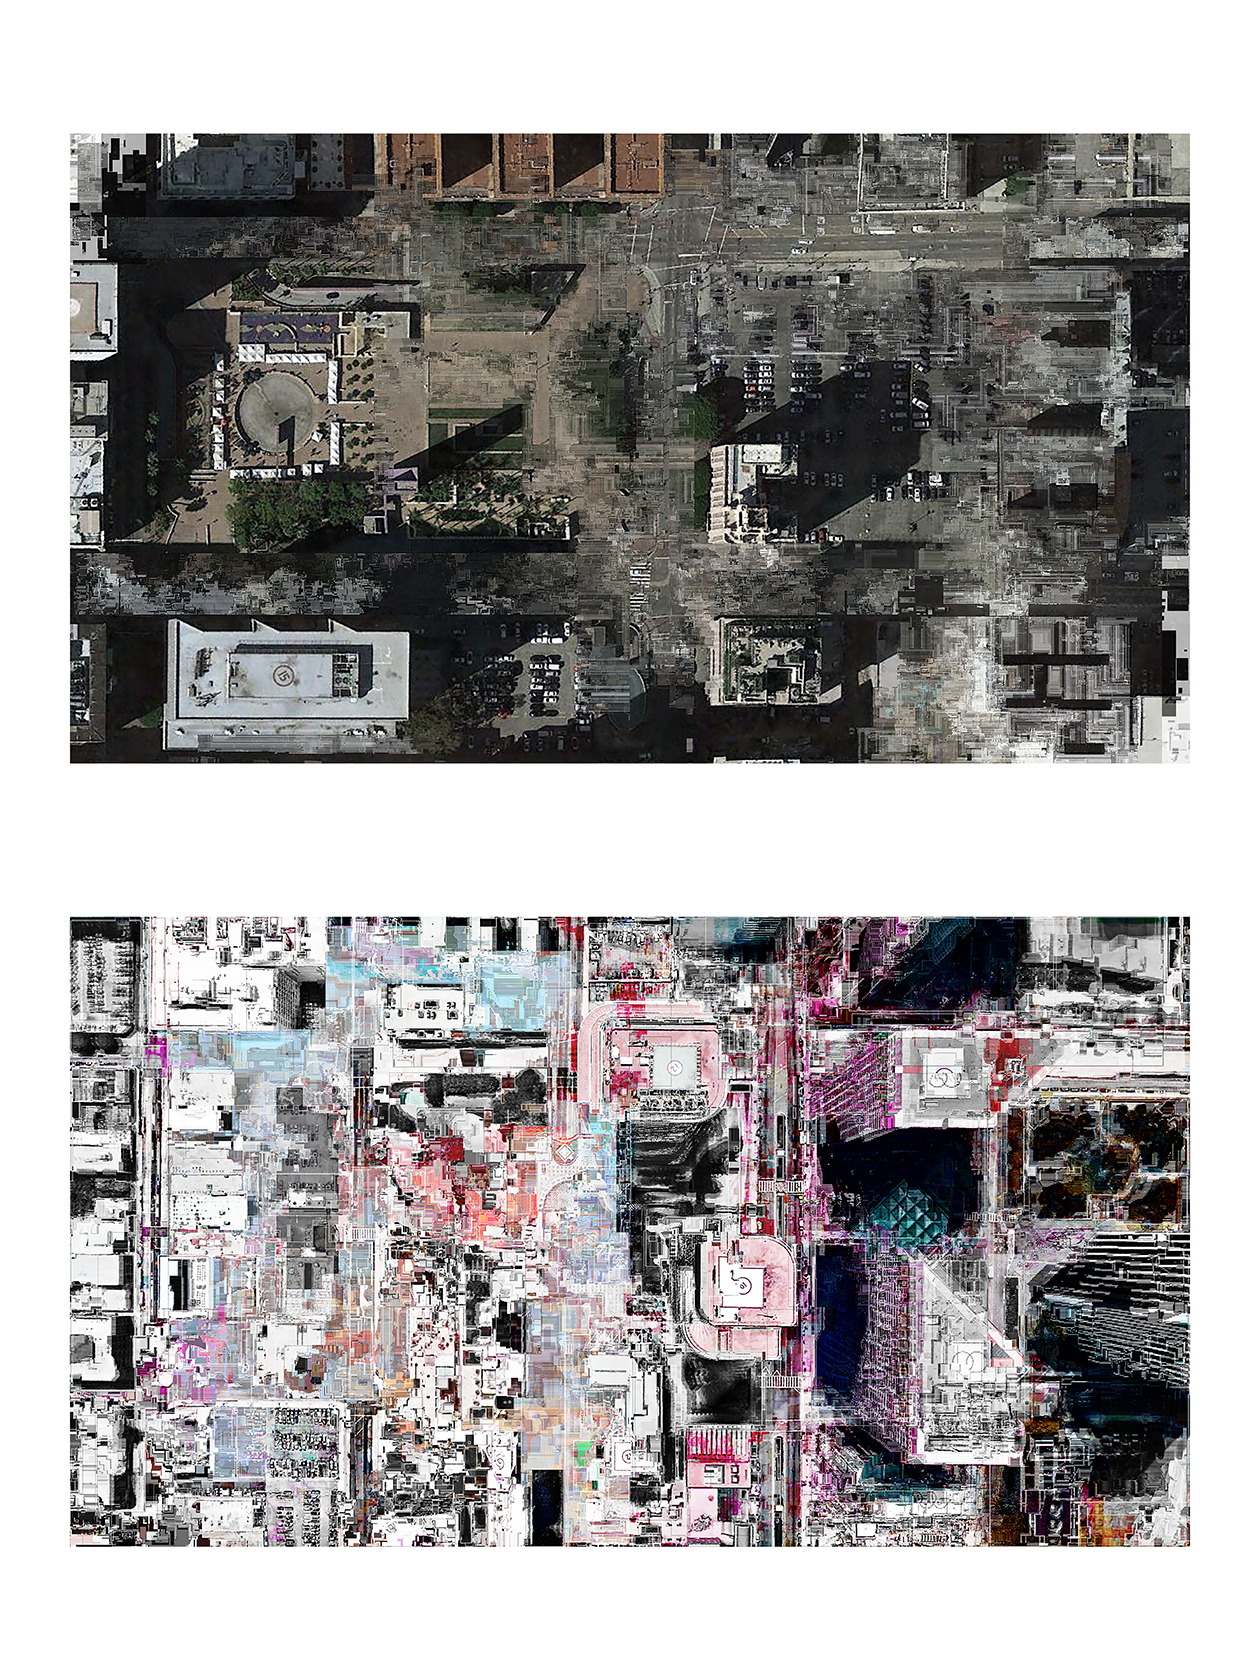 ImageProcessing-min.png